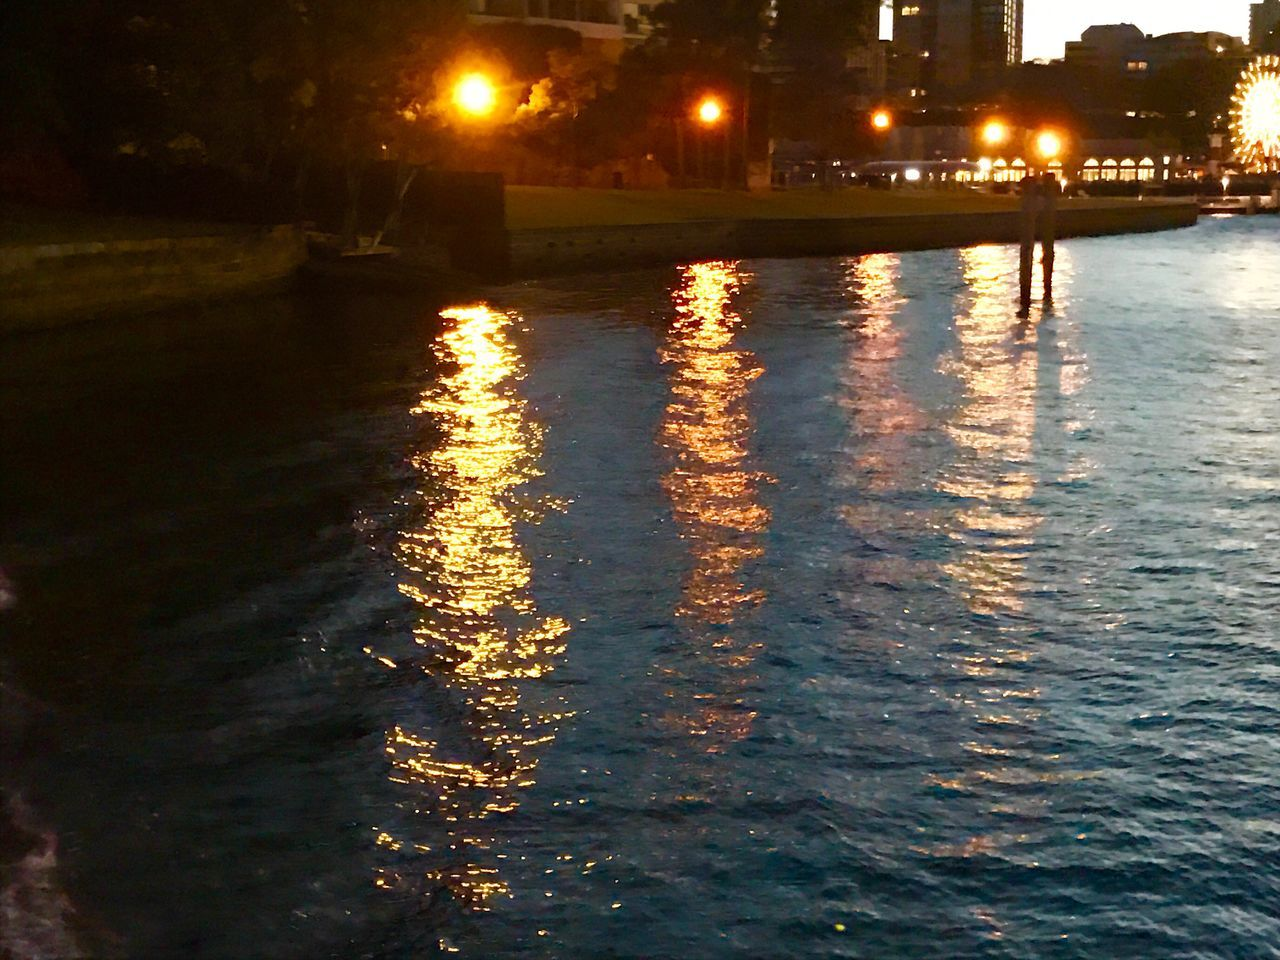 Water Illuminated Night Waterfront Outdoors Nature No People Harbourside City Lights And Shadows Morning Sky